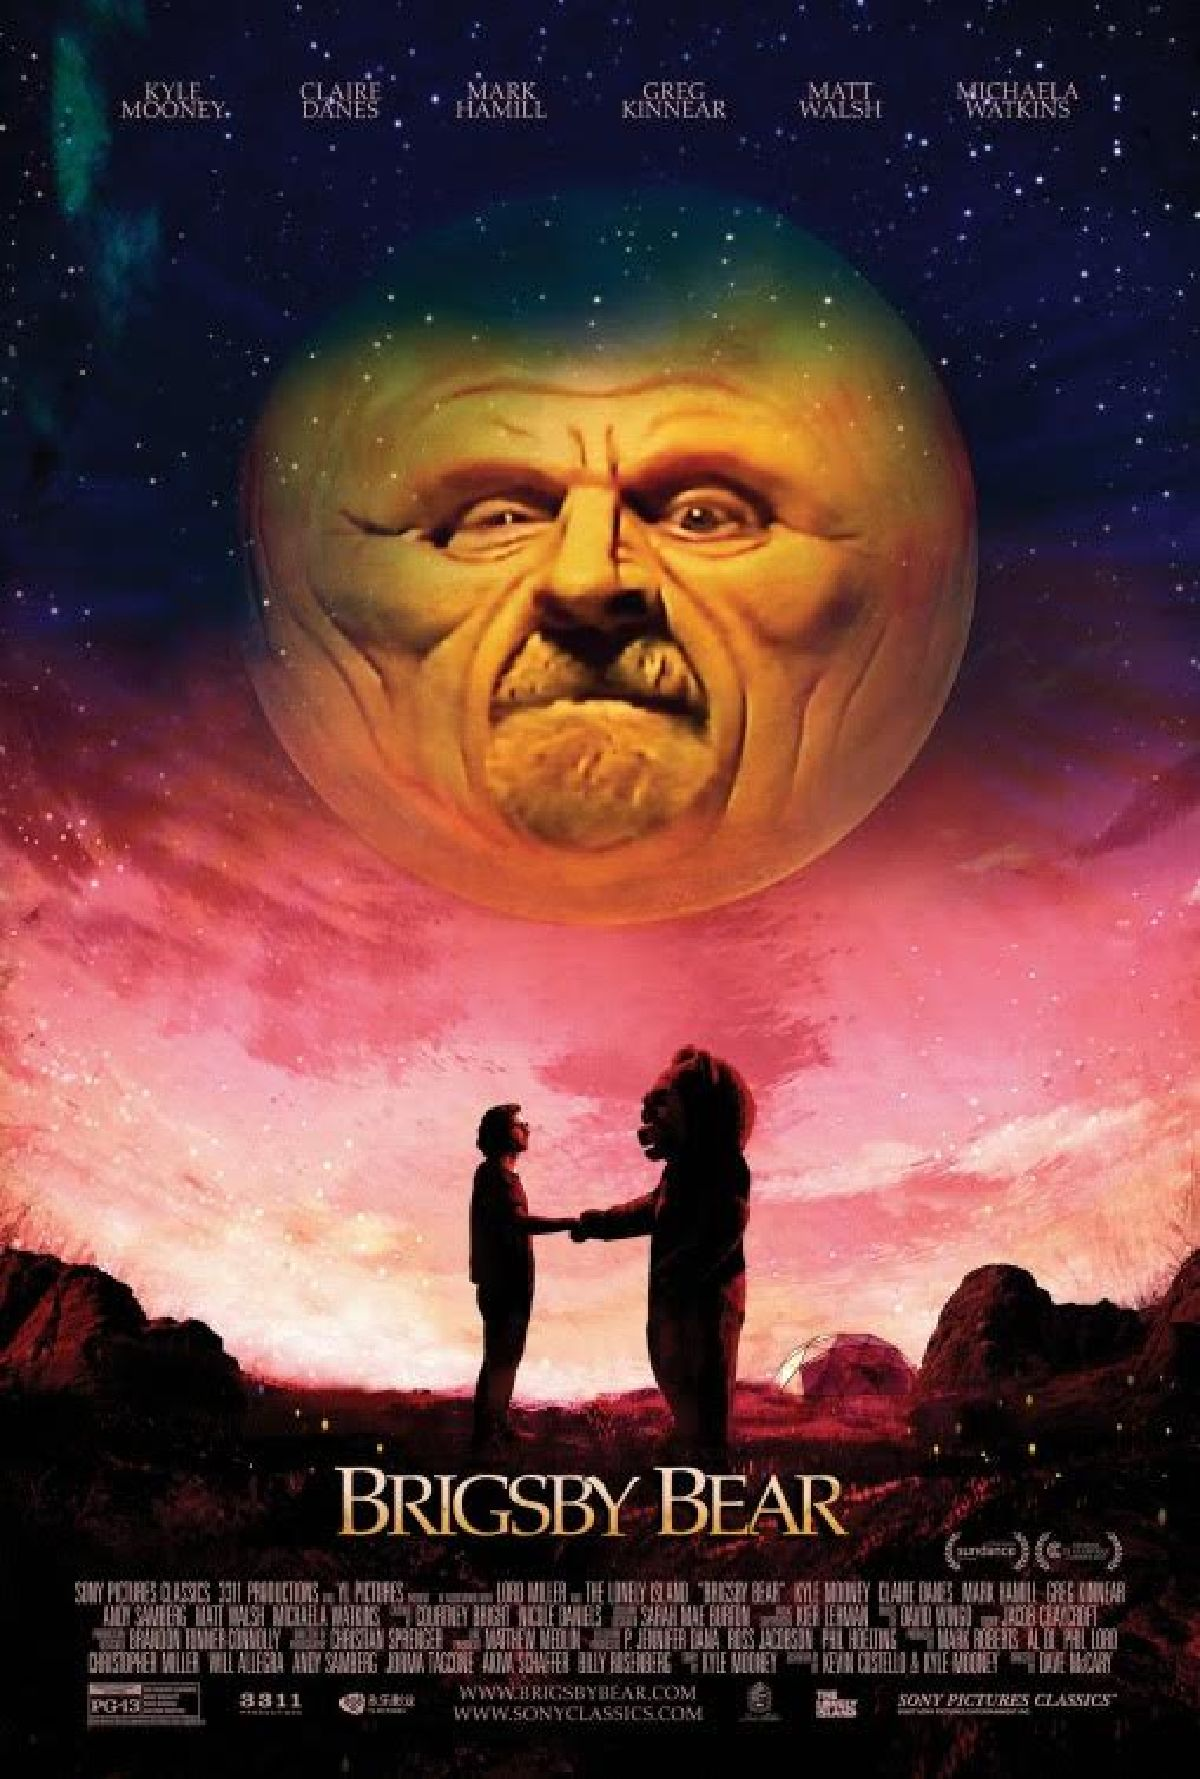 'Brigsby Bear' movie poster